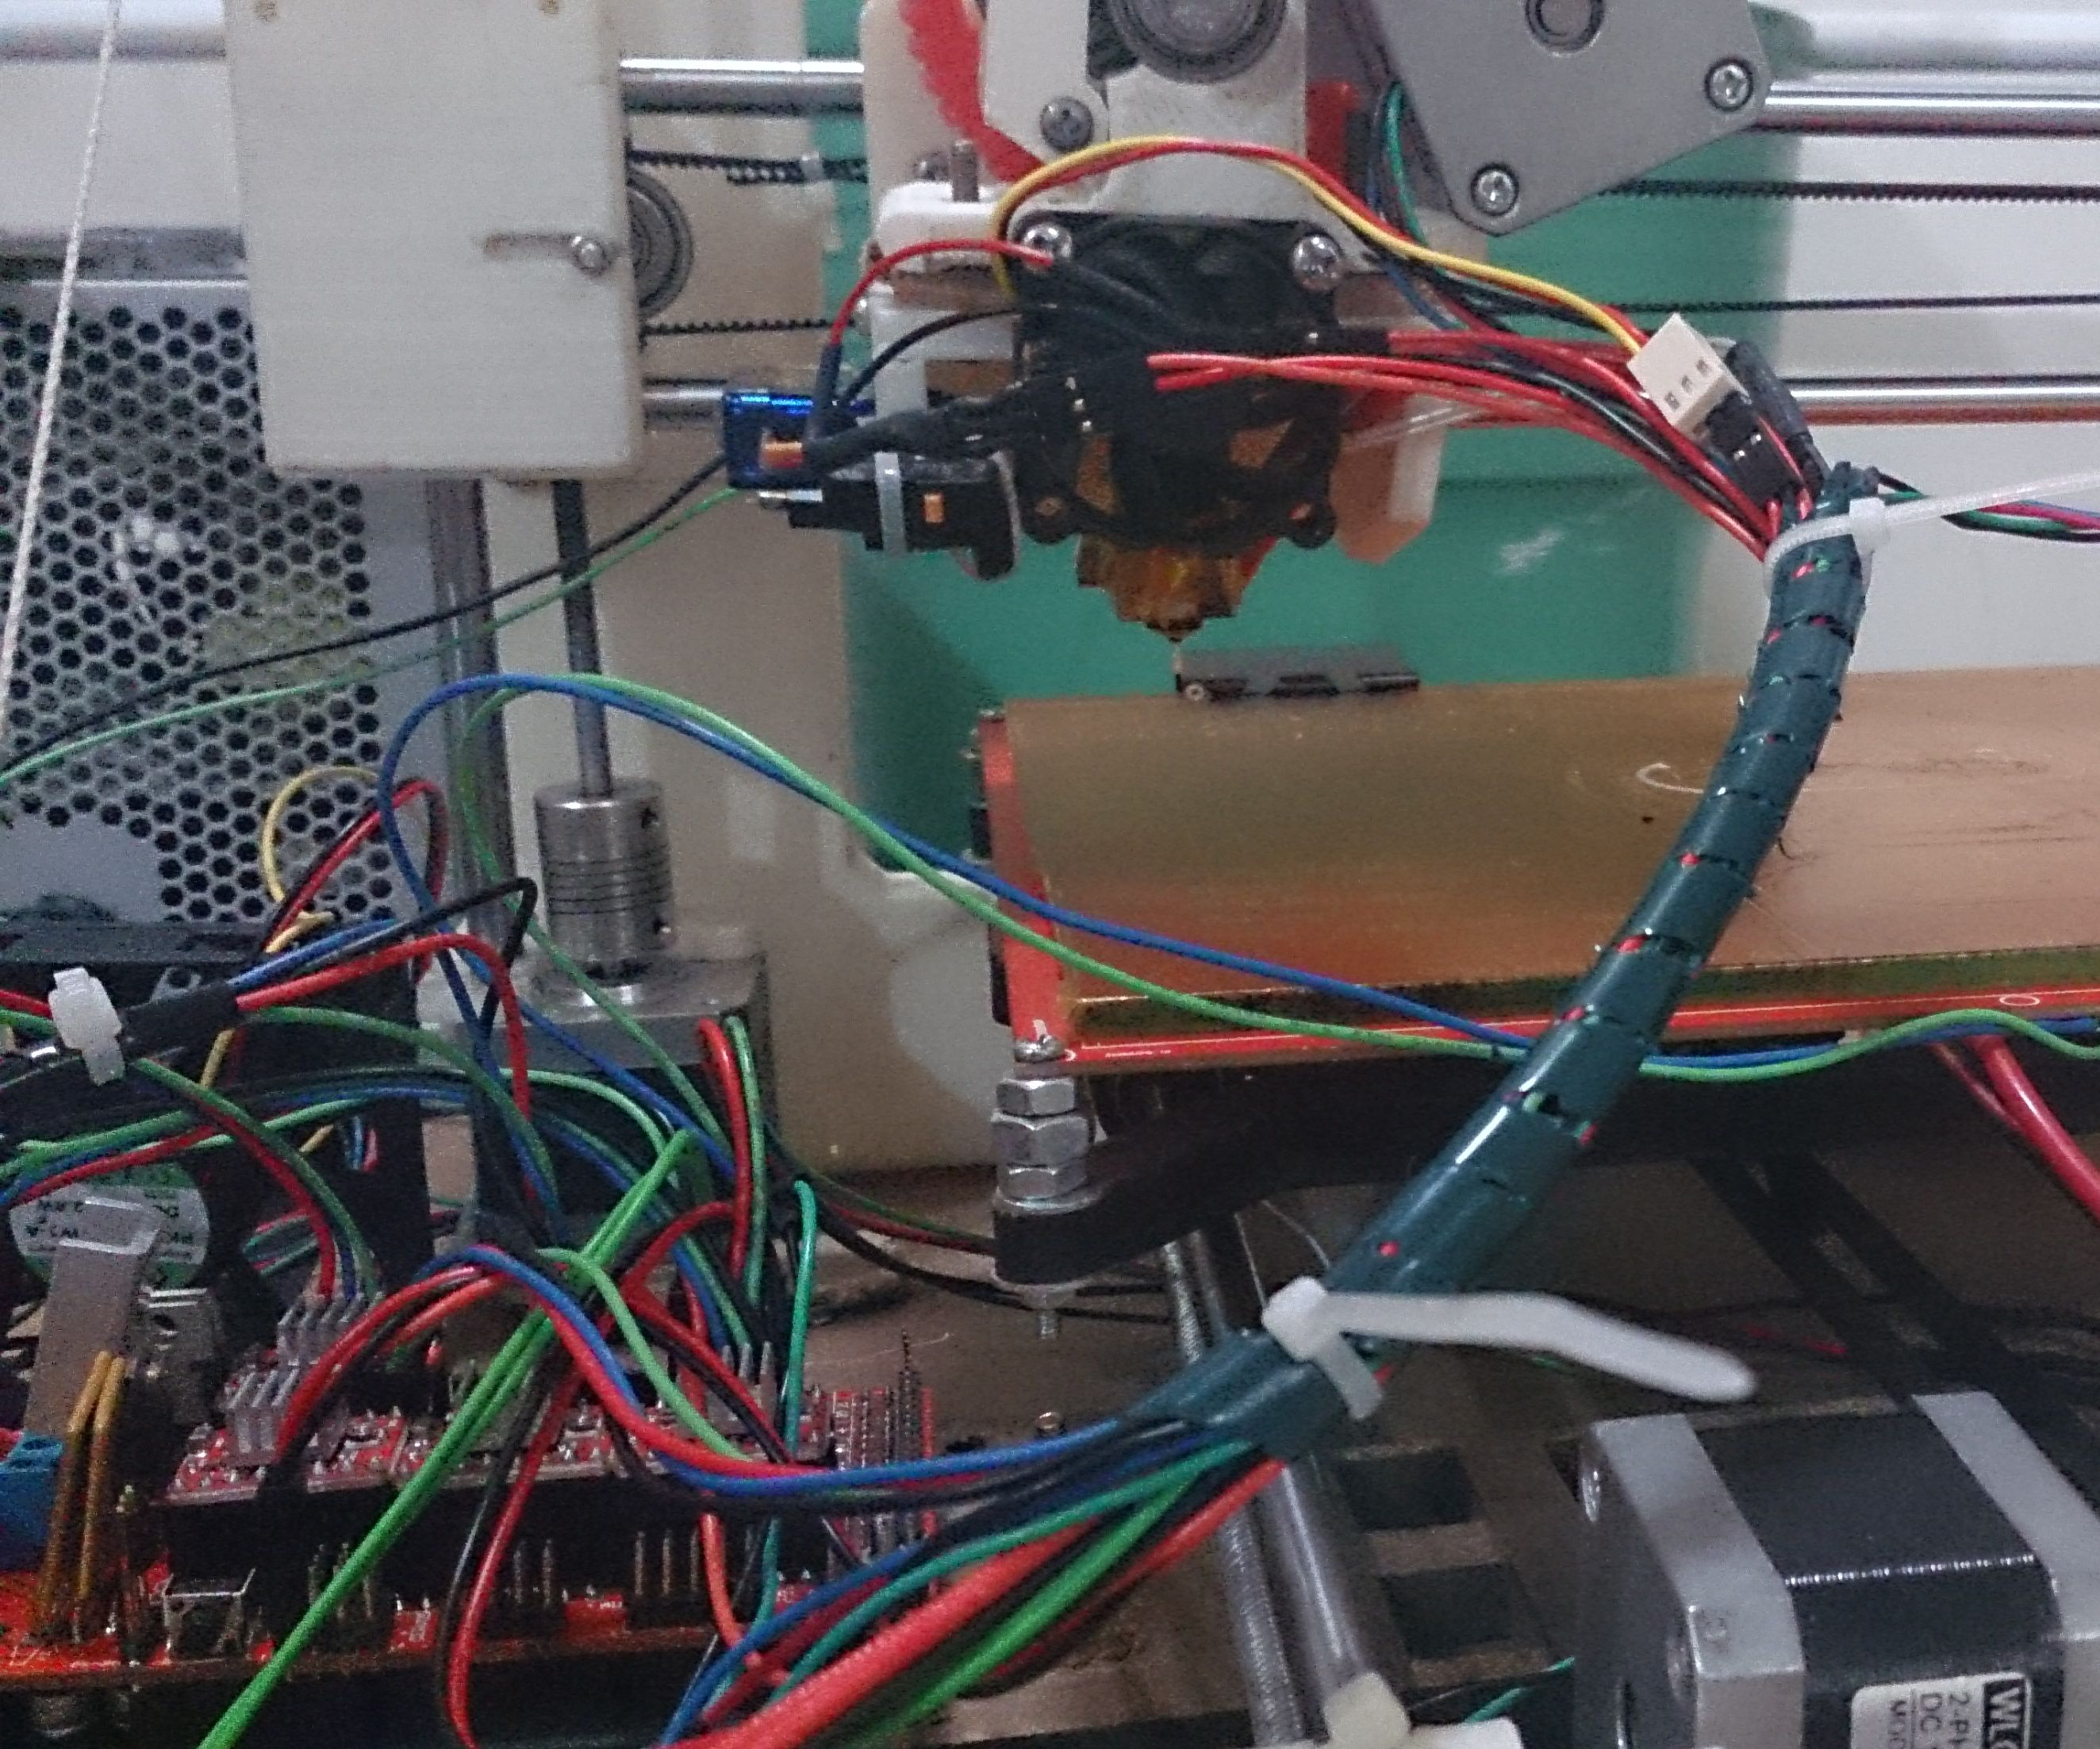 Straw Cable/Wire Management Sleeve for 3d Printers and Arduino Projects